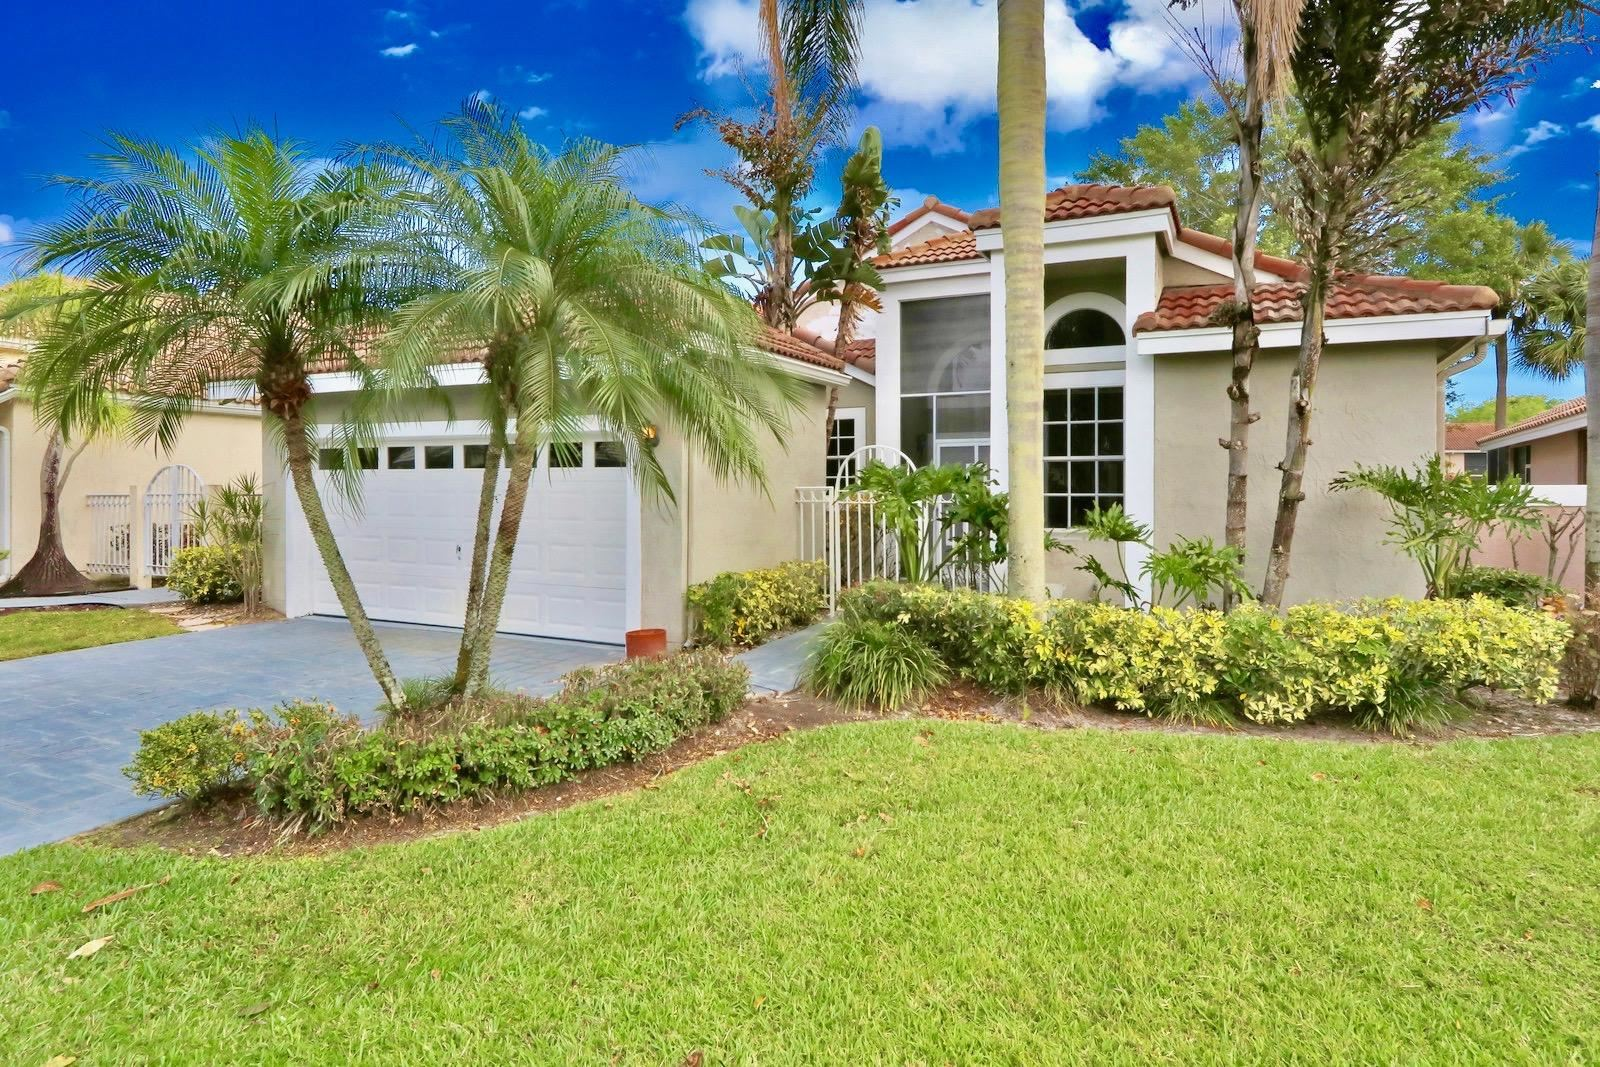 6866 Briarlake Circle, Palm Beach Gardens, FL 33418 - #: RX-10611917